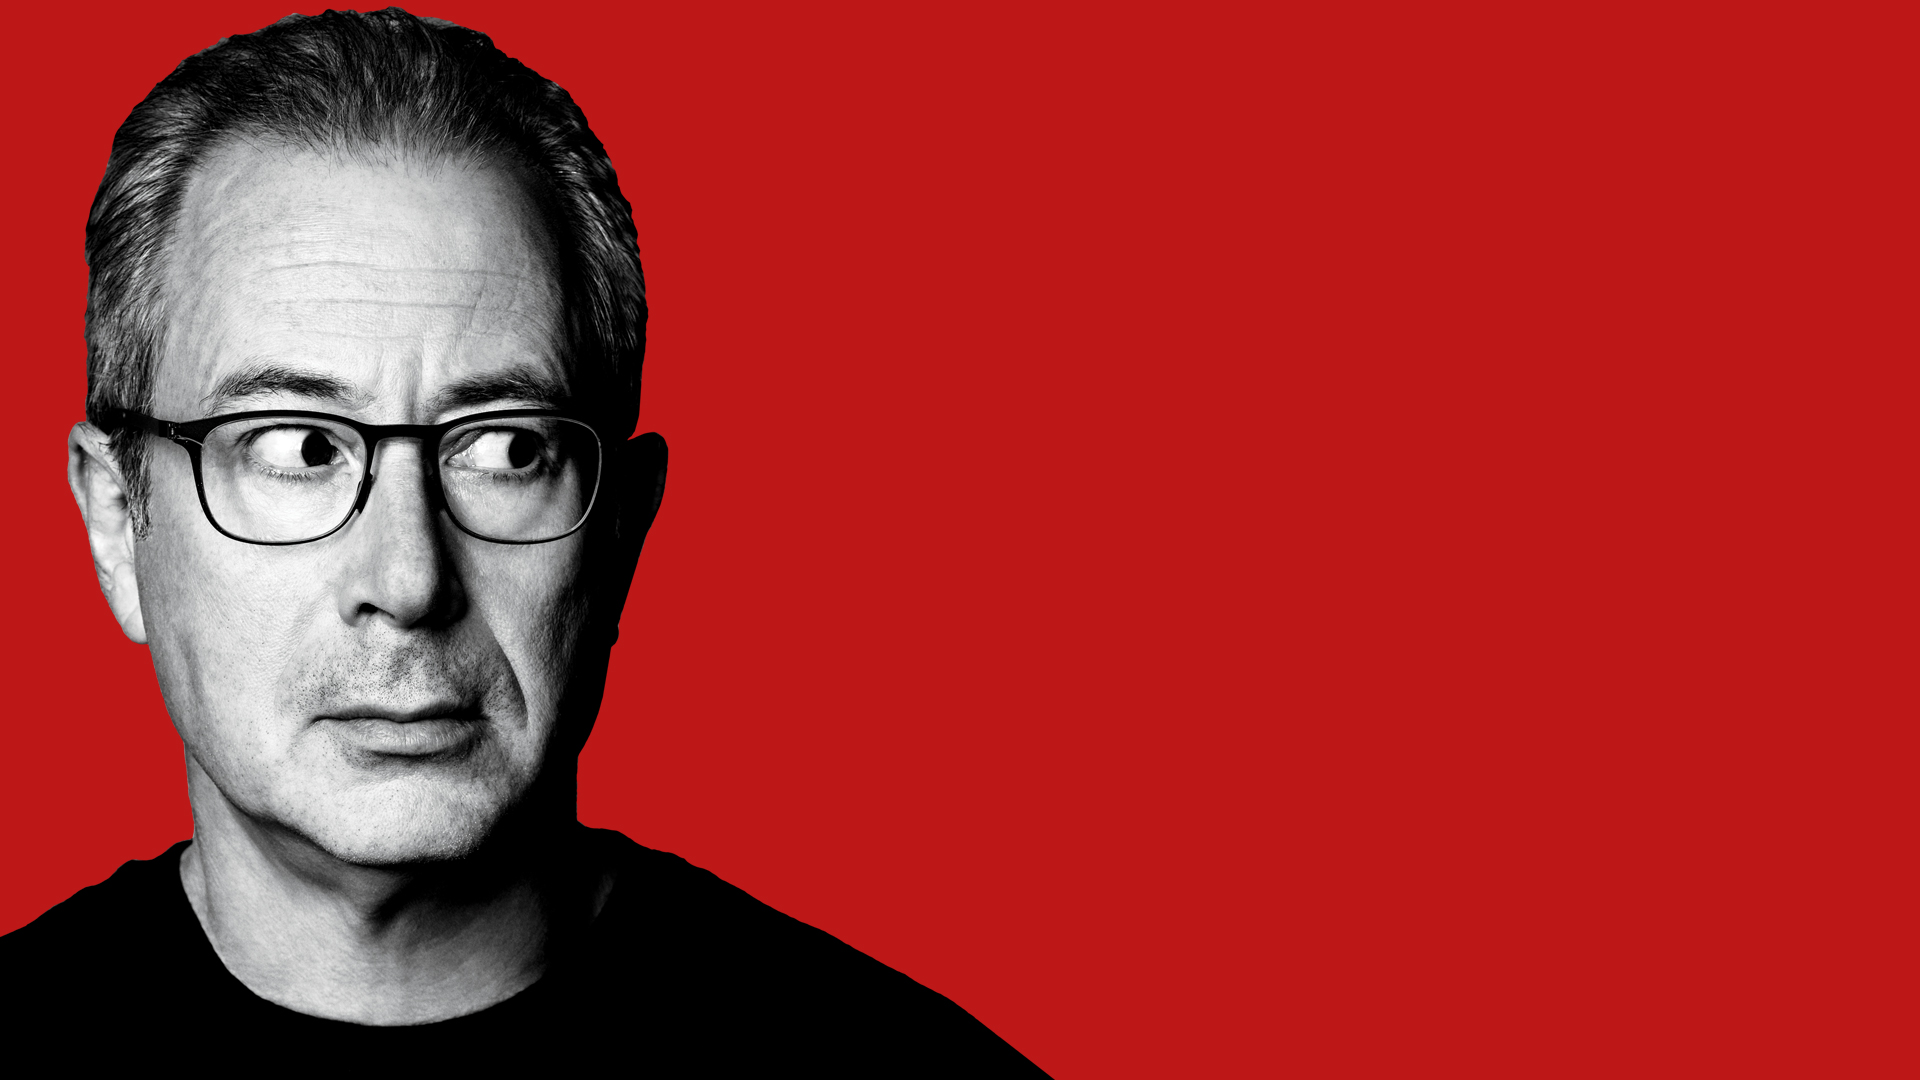 Ben Elton will perform at Aberdeen Music Hall next year.